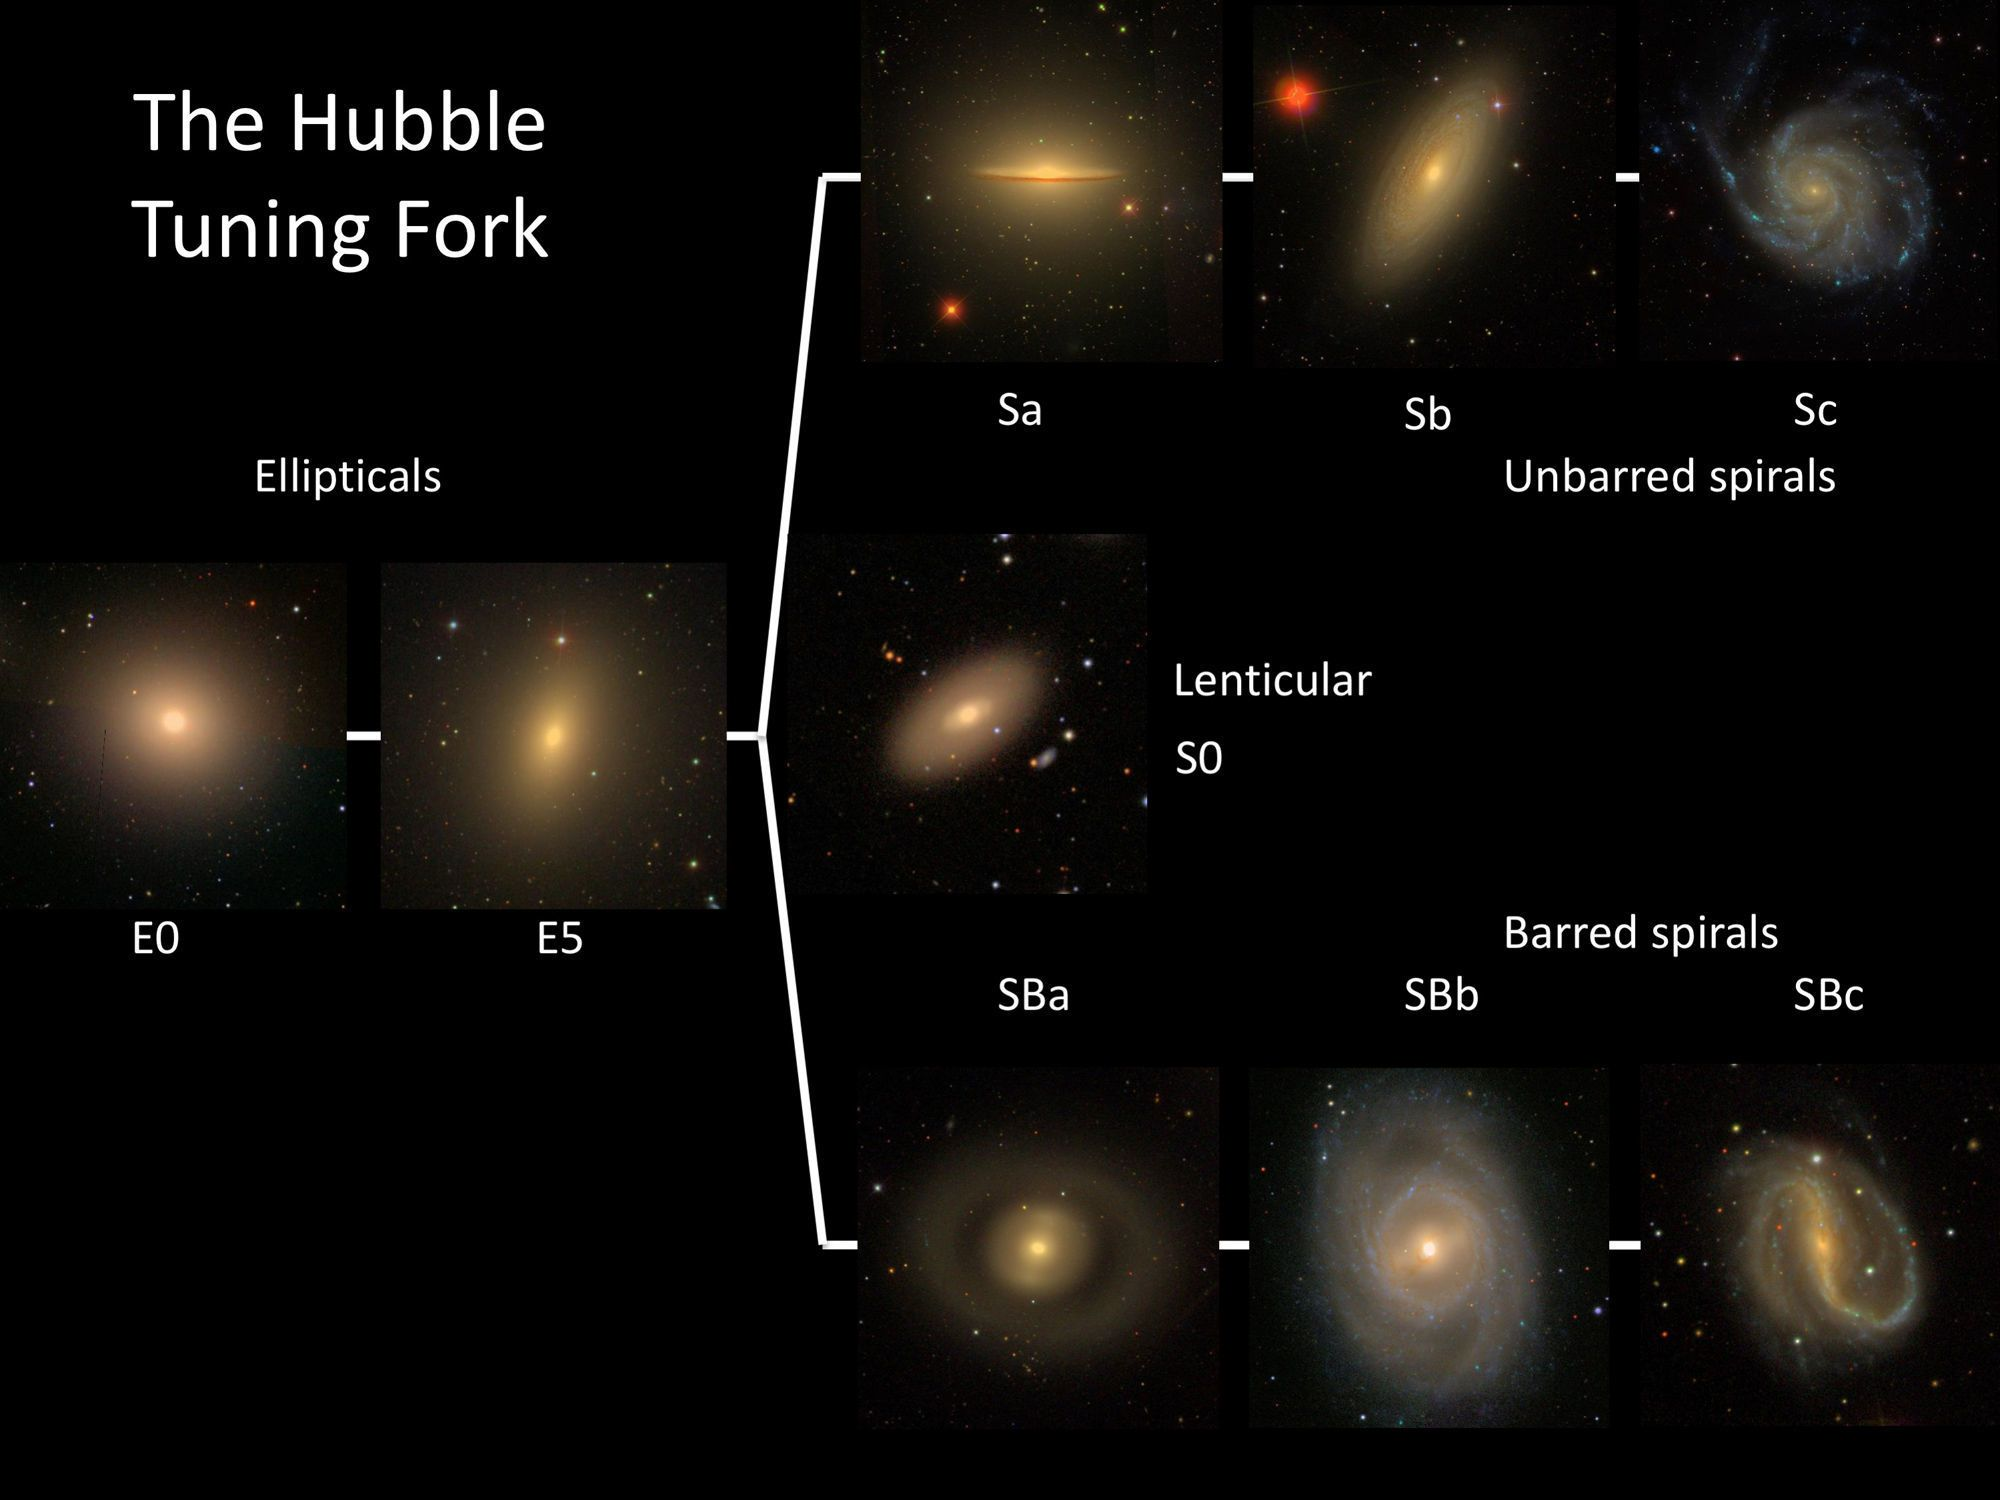 The Hubble Tuning Fork Diagram Classifies Galaxies